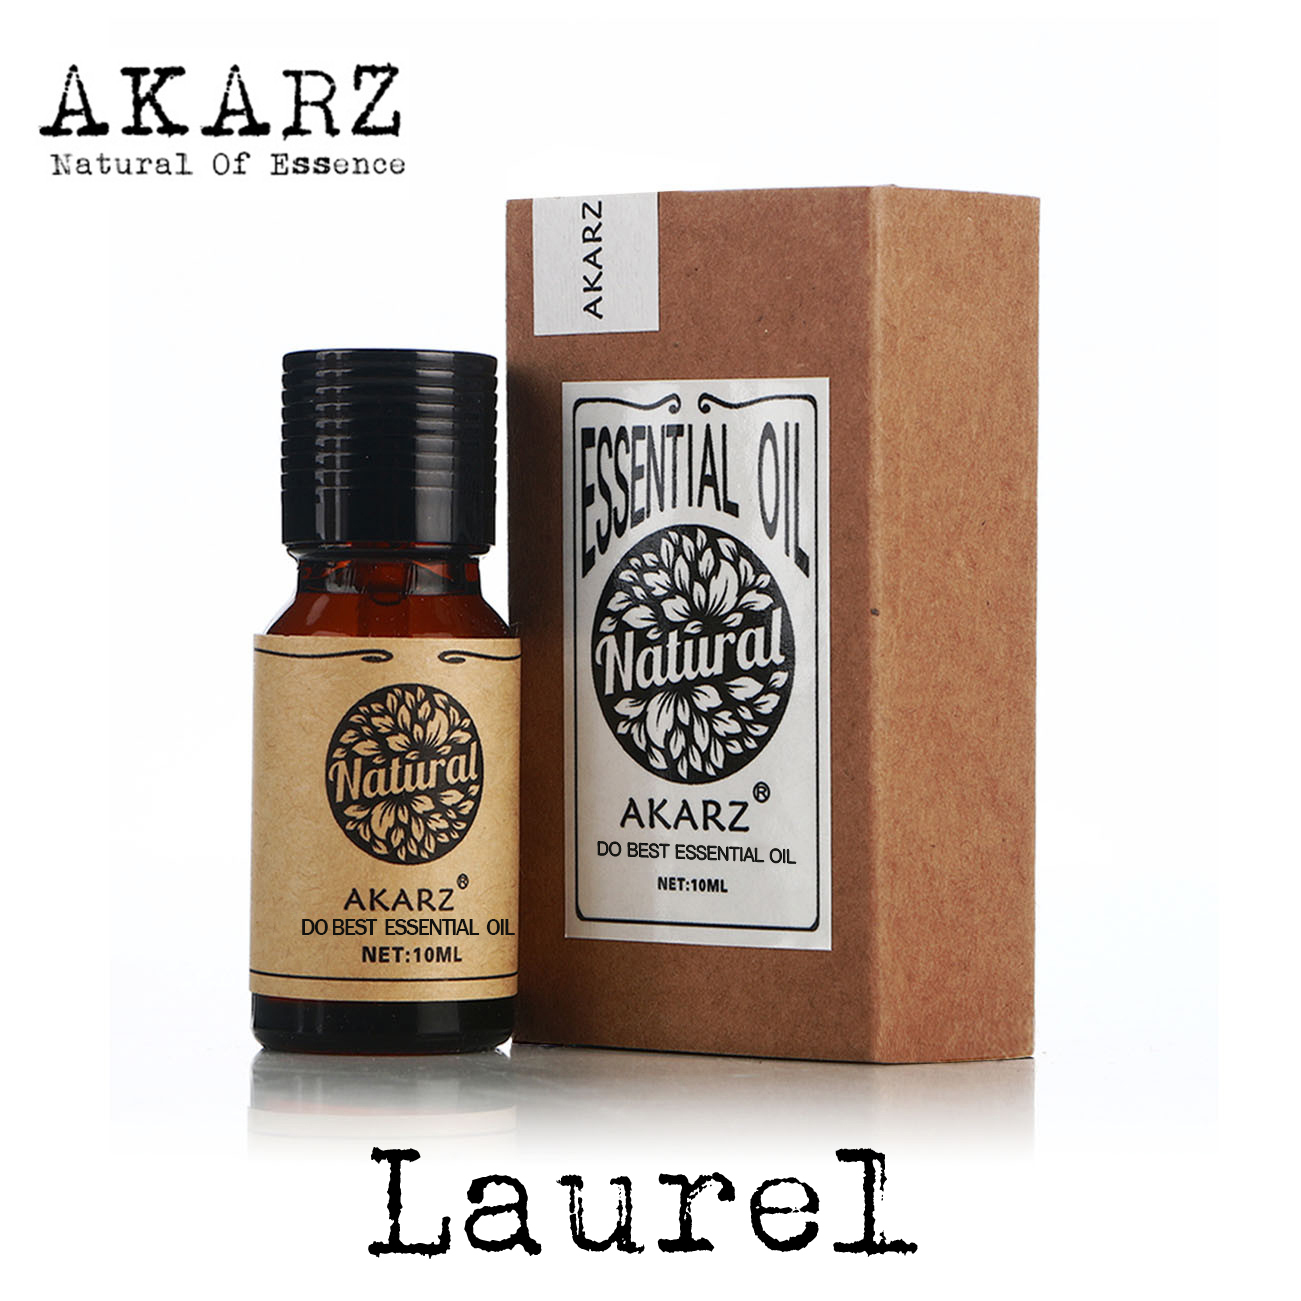 AKARZ Famous Brand Natural Laurel Essential Oil Acne Removal Healing Wound Stimulate Hair Growth Healing Wound Bay Essential Oil